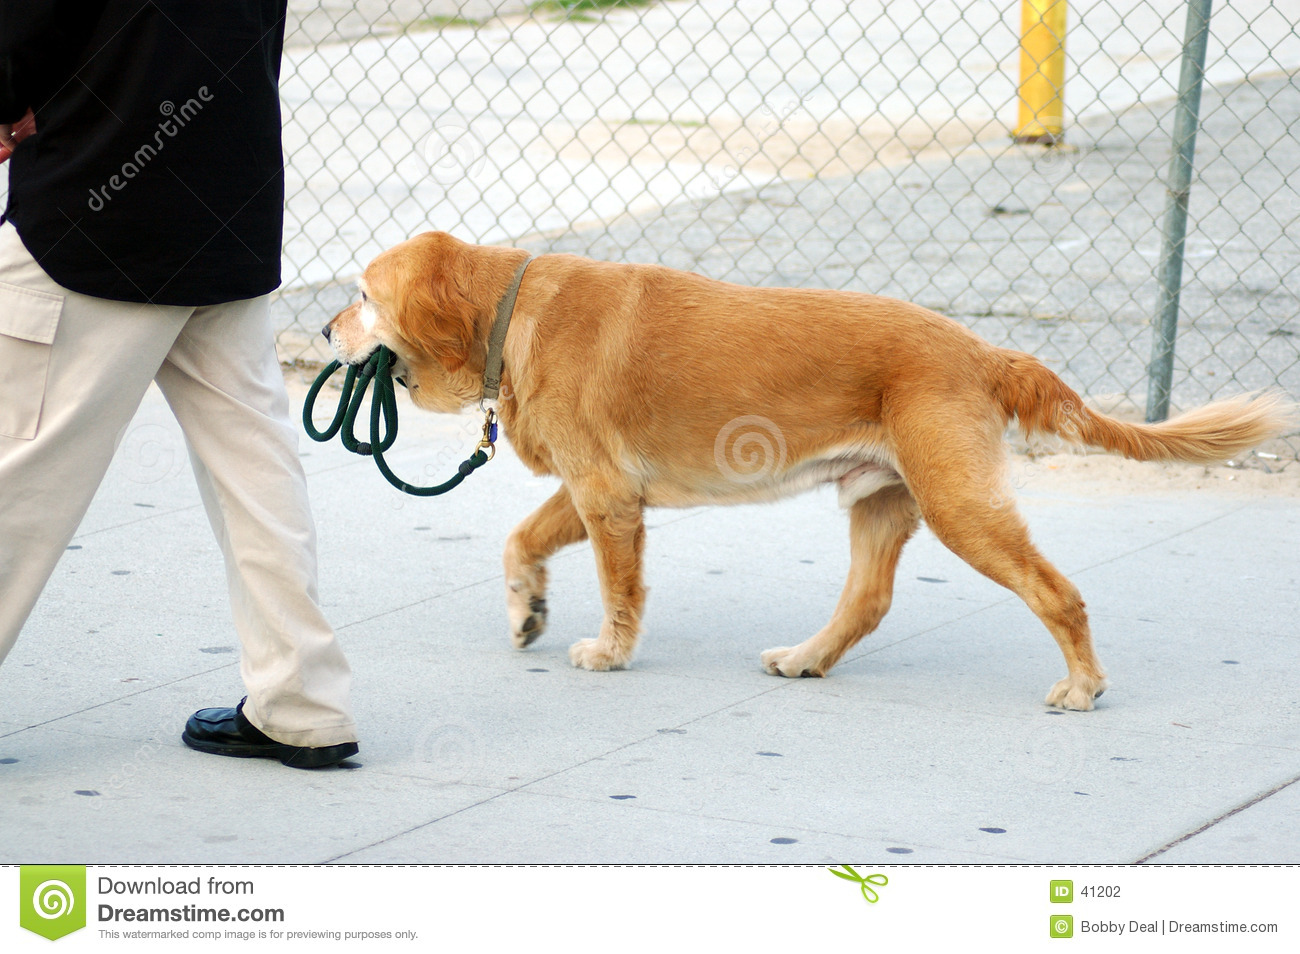 dog out walking his human. You will notice who has the leash!